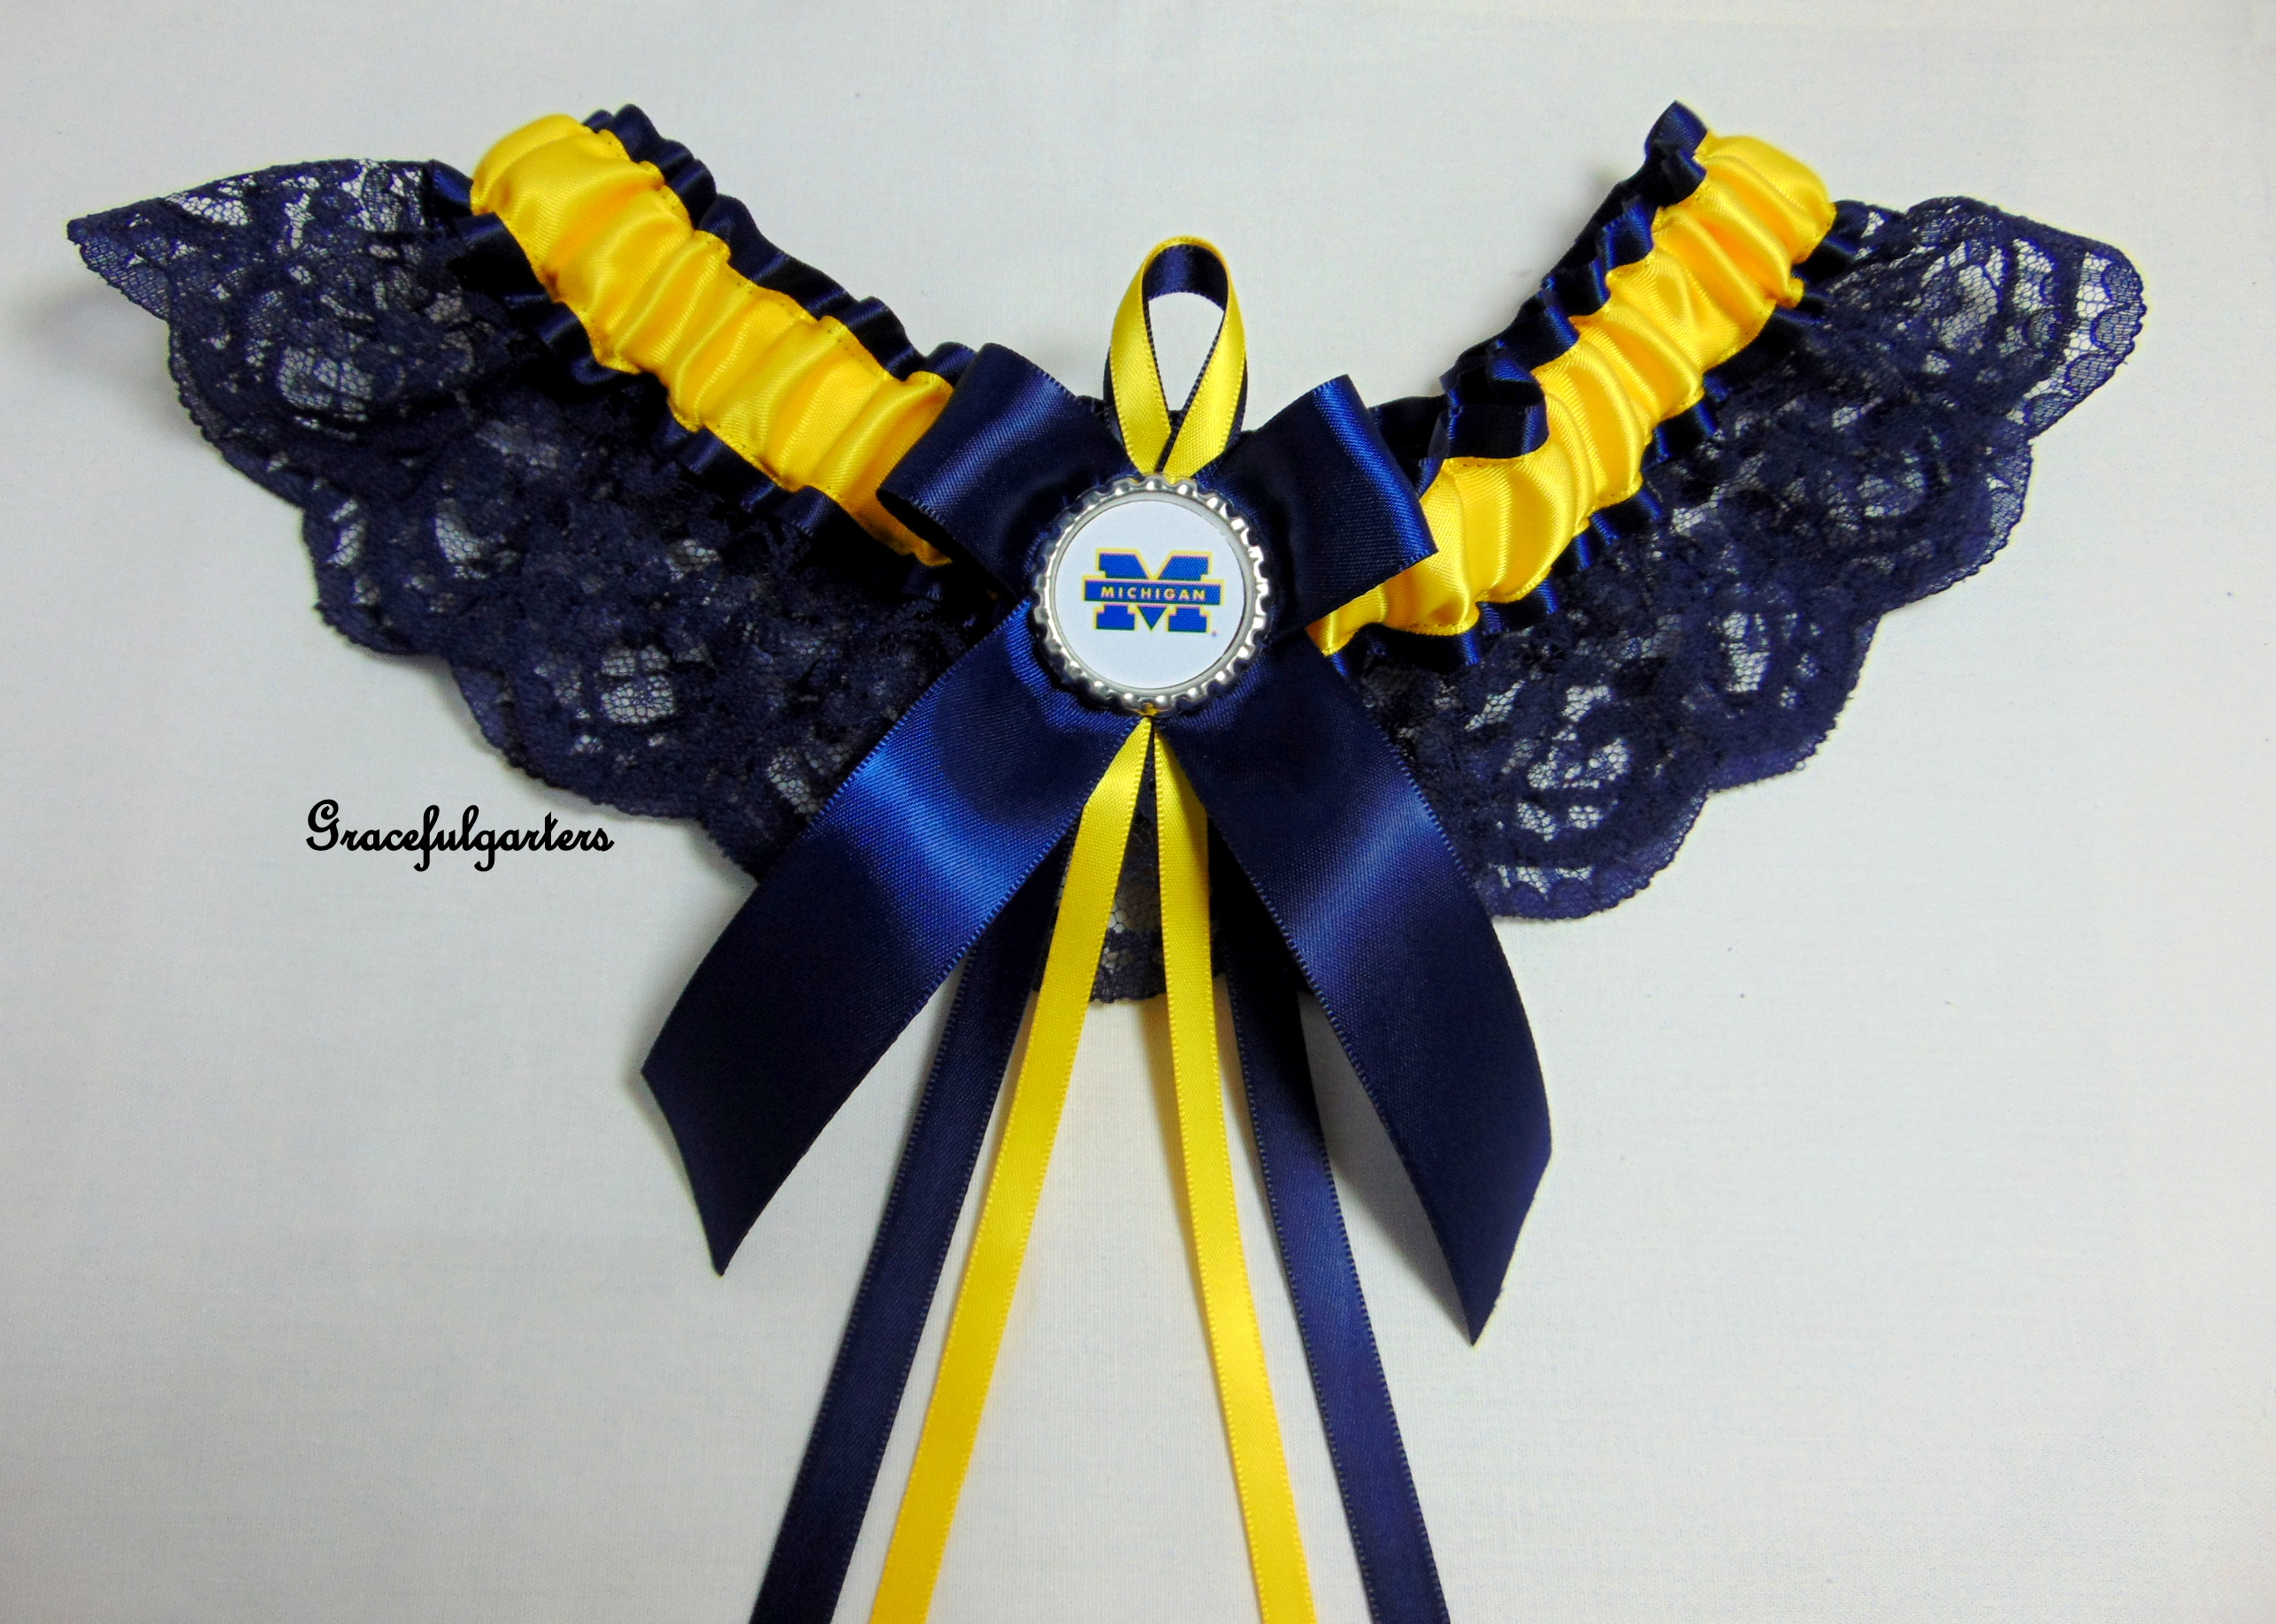 Mitchigan American Football Team Lace Bridal Wedding Garter